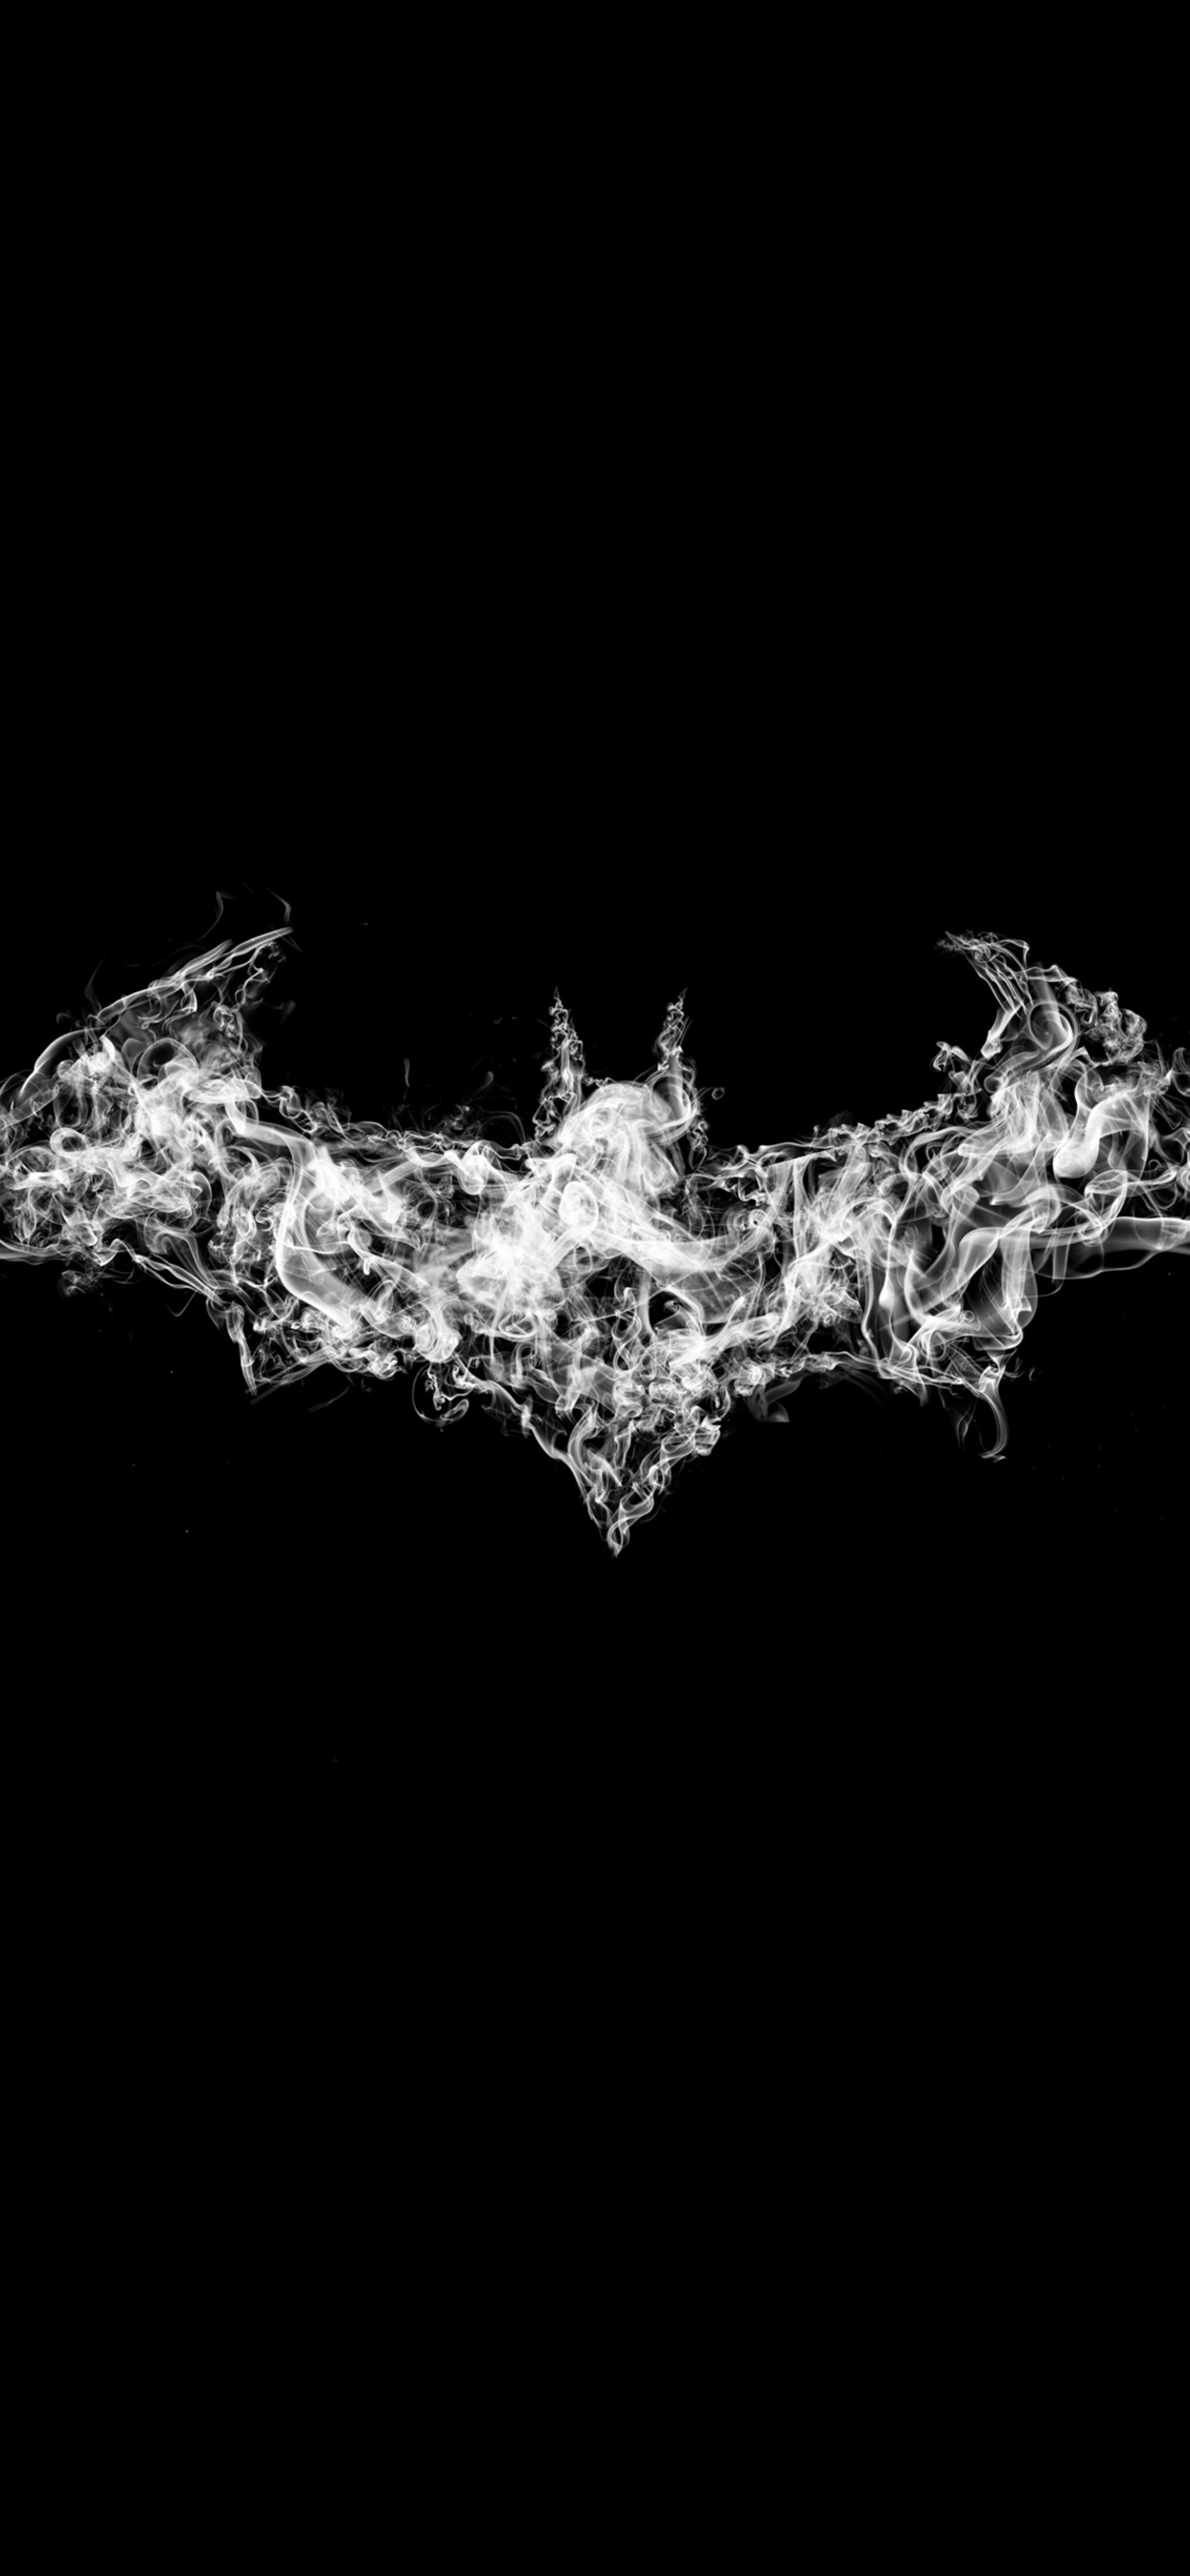 1242x2688 Batman Logo Smoke Art Iphone Xs Max Hd 4k